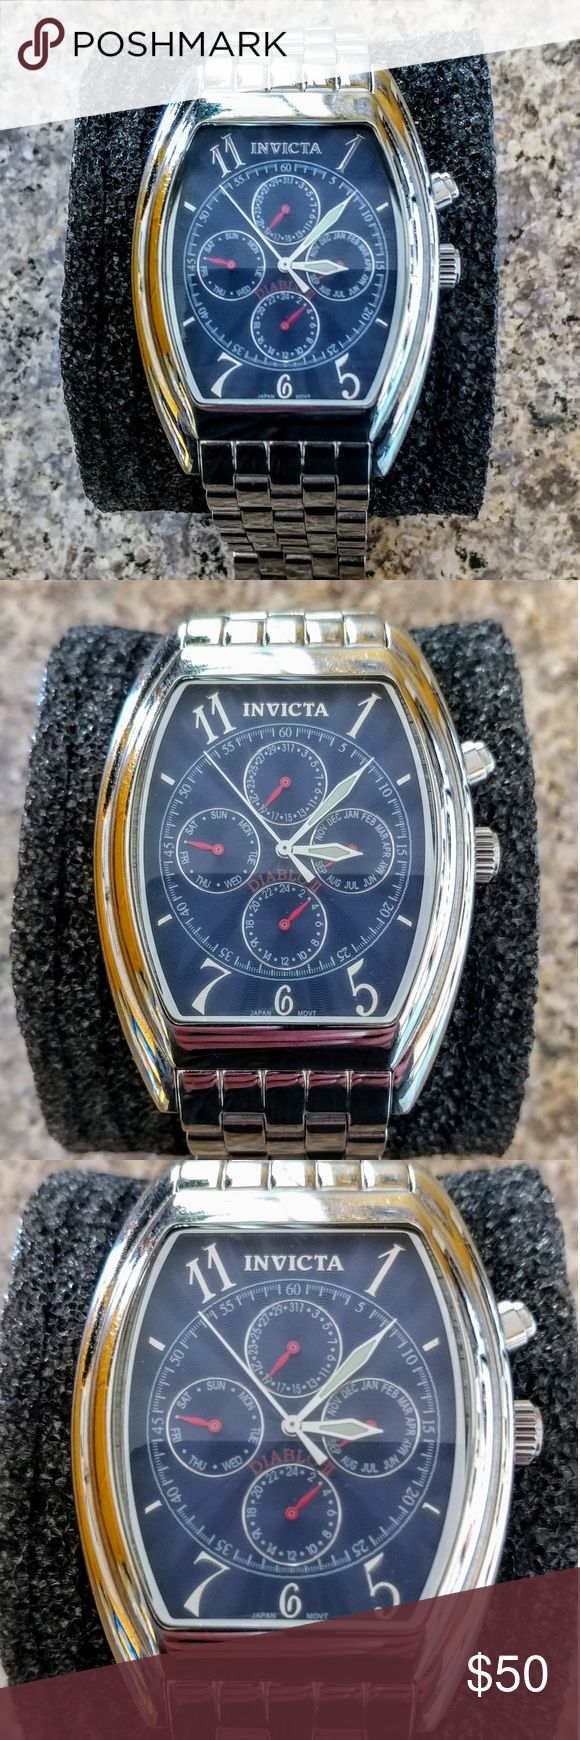 Invicta Diablo II 9052 Stainless Steel Watch Invicta Diablo II 9052 Stainless Steel Watch HARD TO FIND !!! Great Condition minor scratches on band as shown in photos, face in excellent condition. May need battery No box. Invicta Accessories Watches